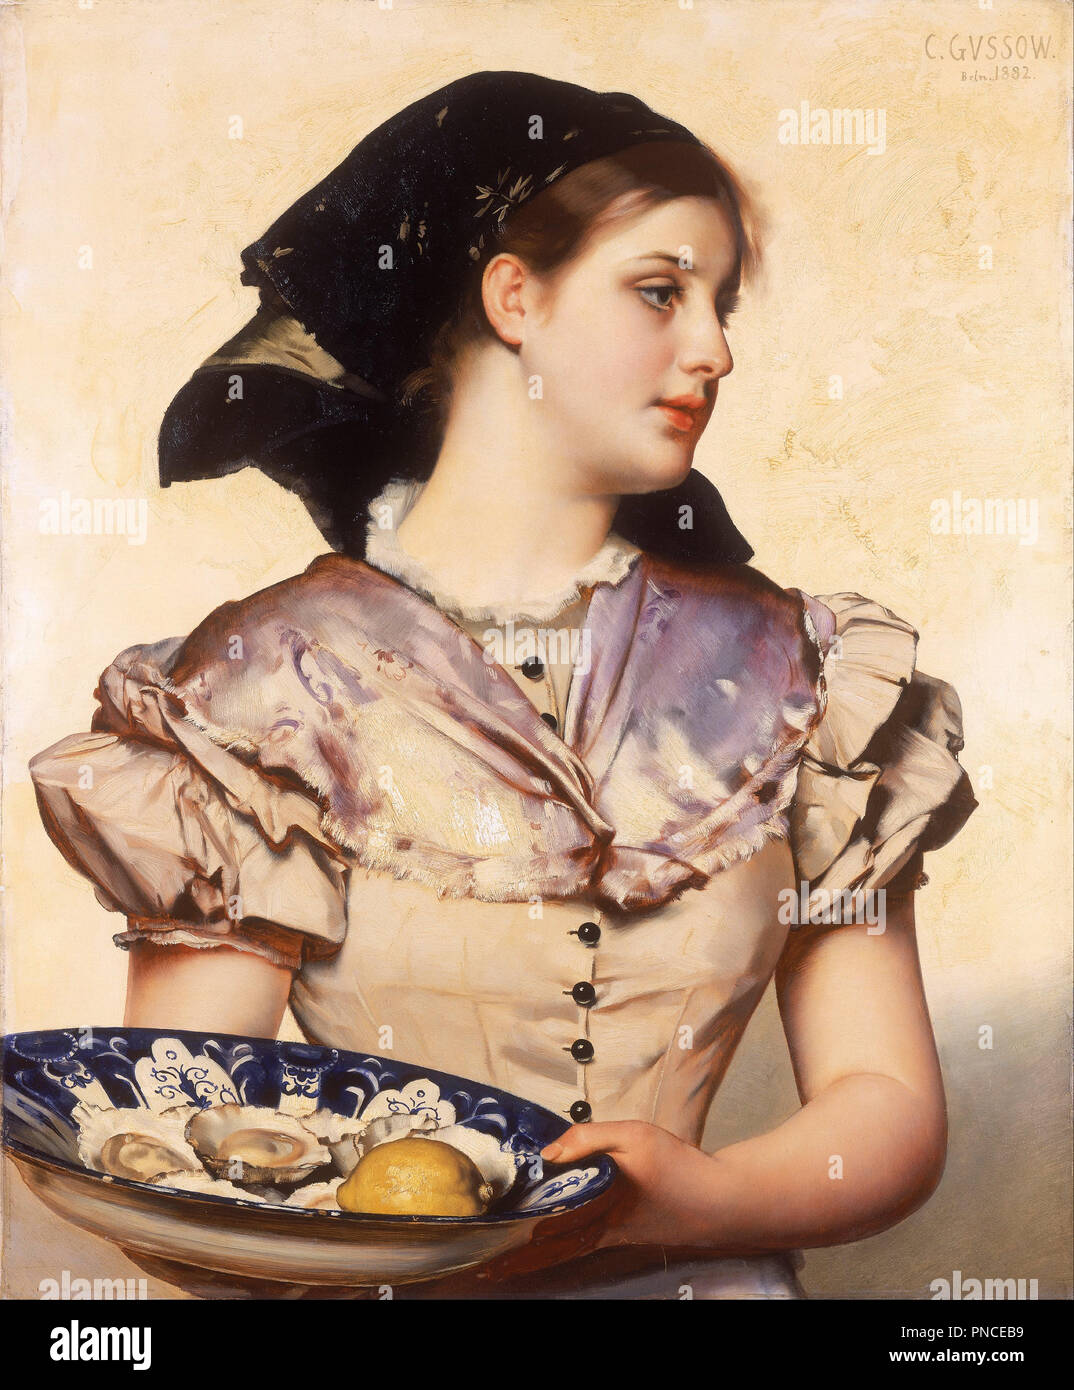 The Oyster Girl. Date/Period: 1882. Oil on bevelled wood panel. Height: 764 mm (30.07 in); Width: 630 mm (24.80 in). Author: KARL GUSSOW. - Stock Image